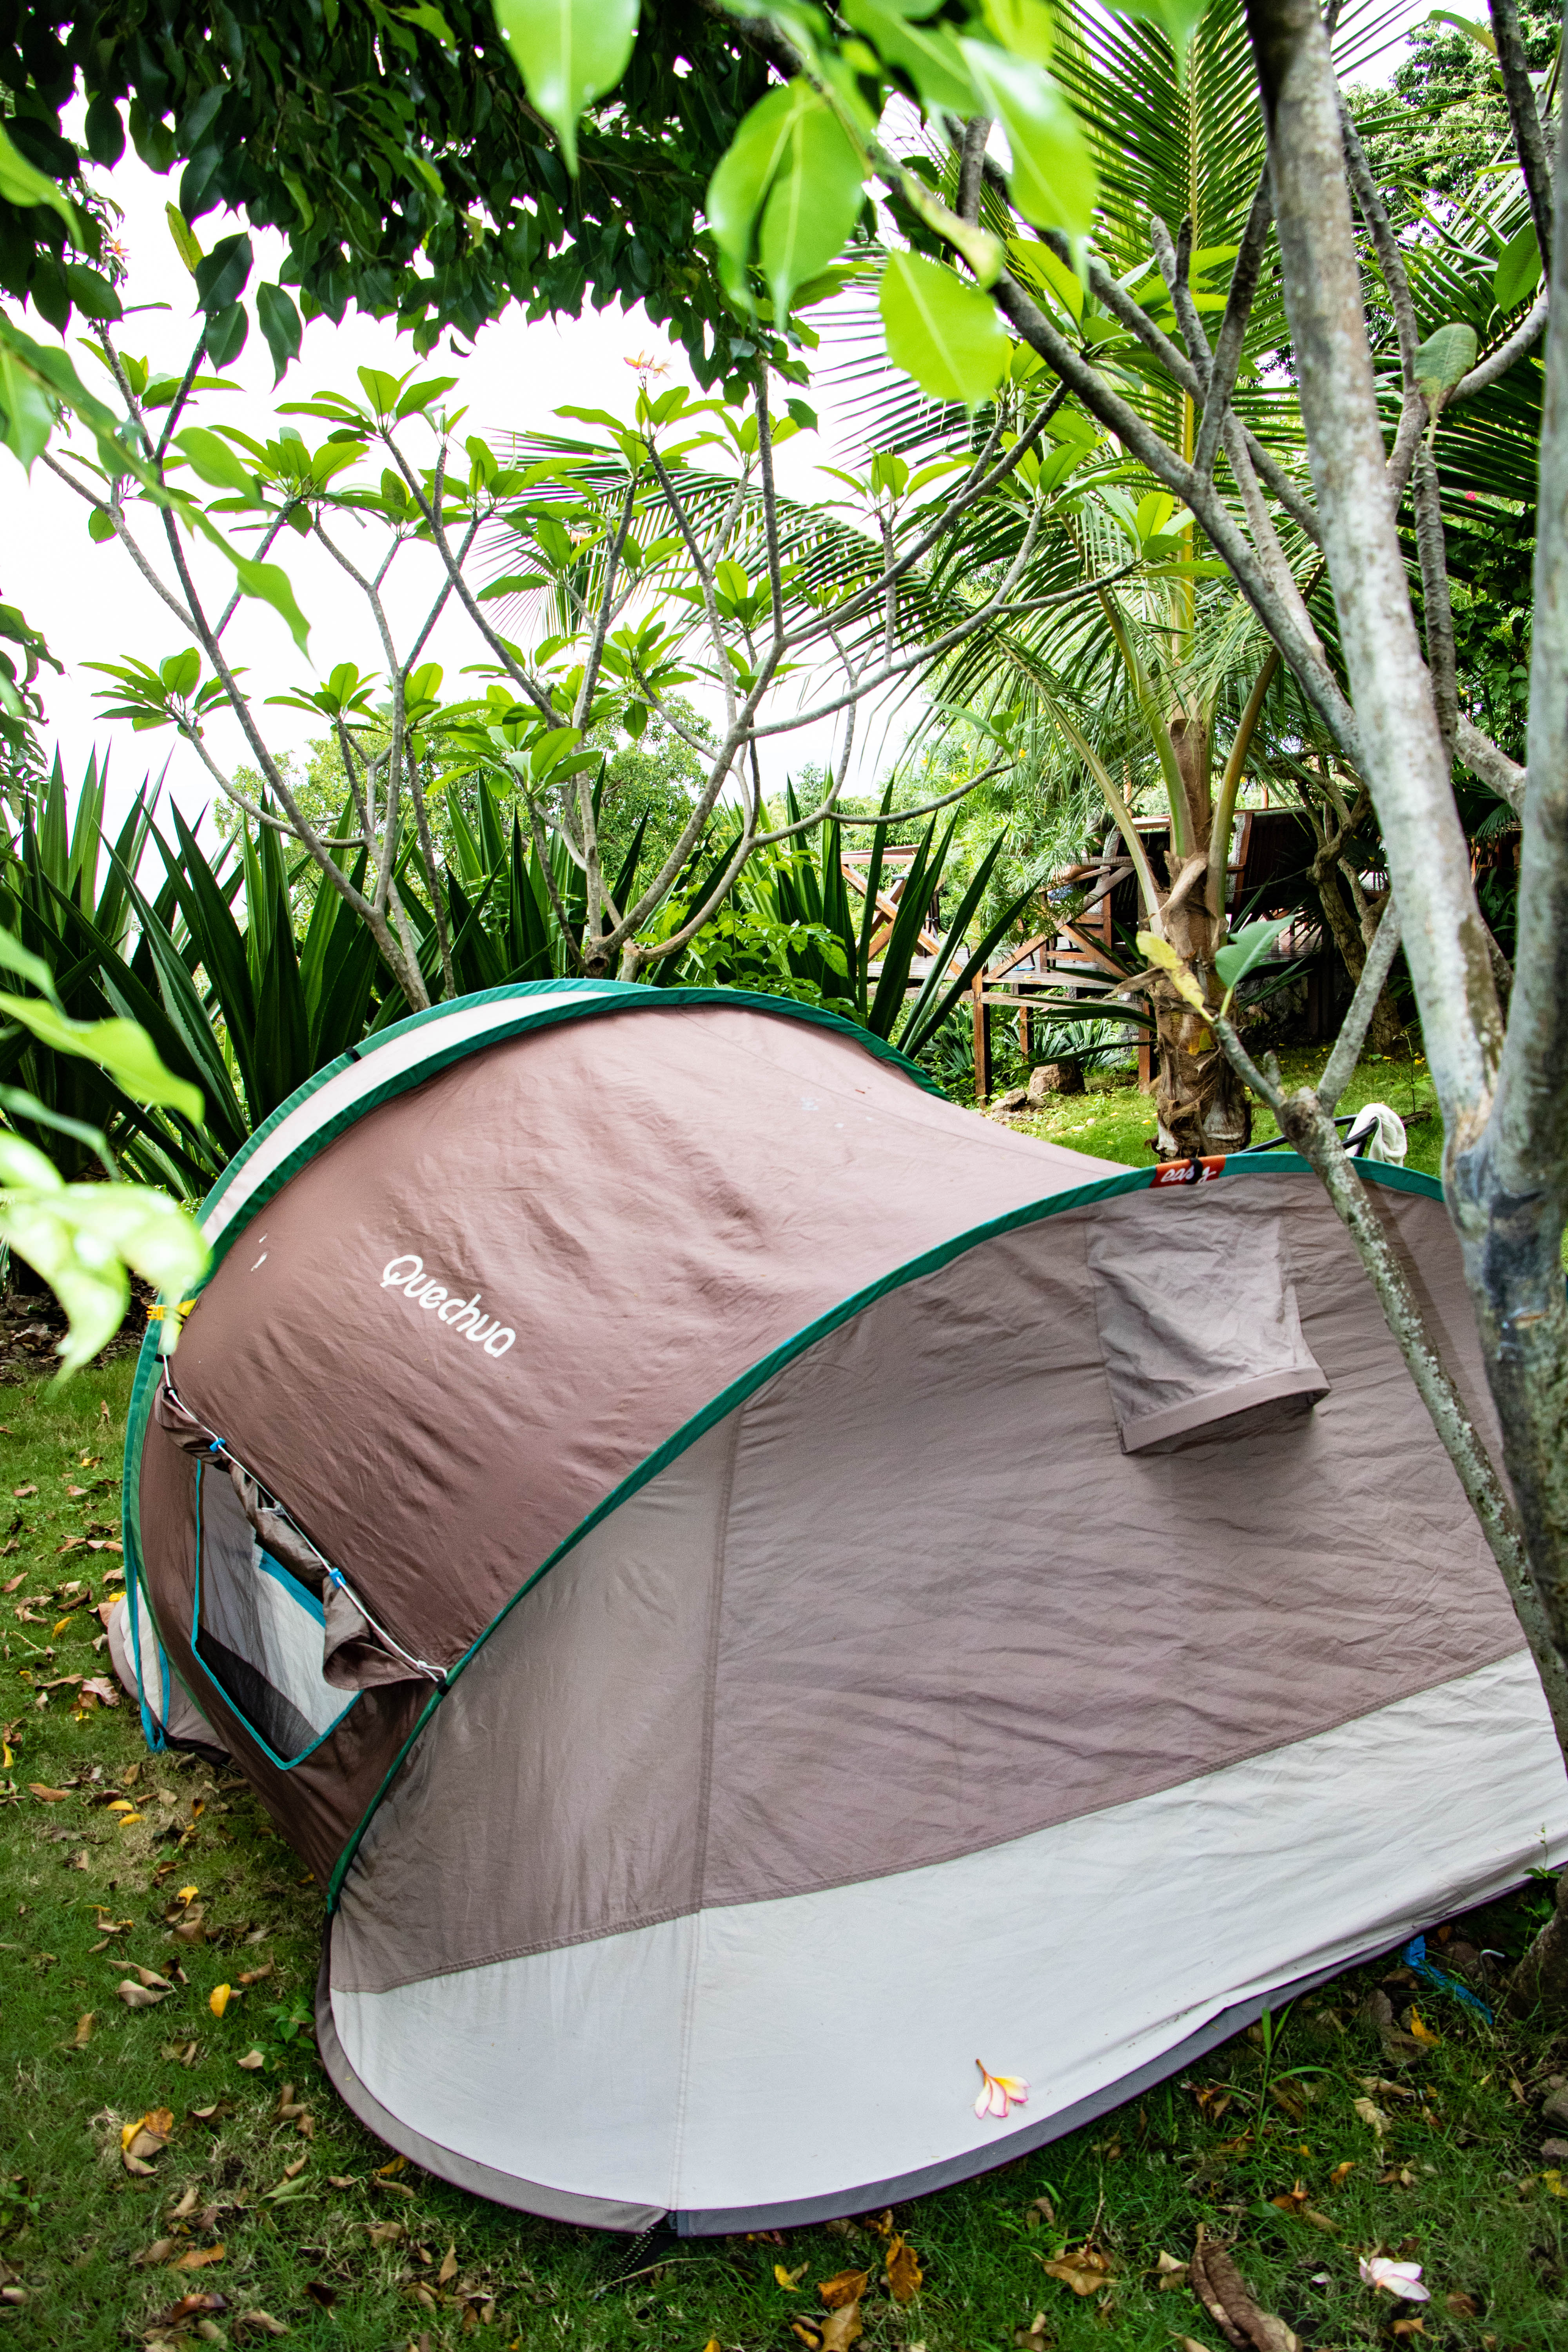 Camping in Sao Tome - Where to stay in Sao Tome